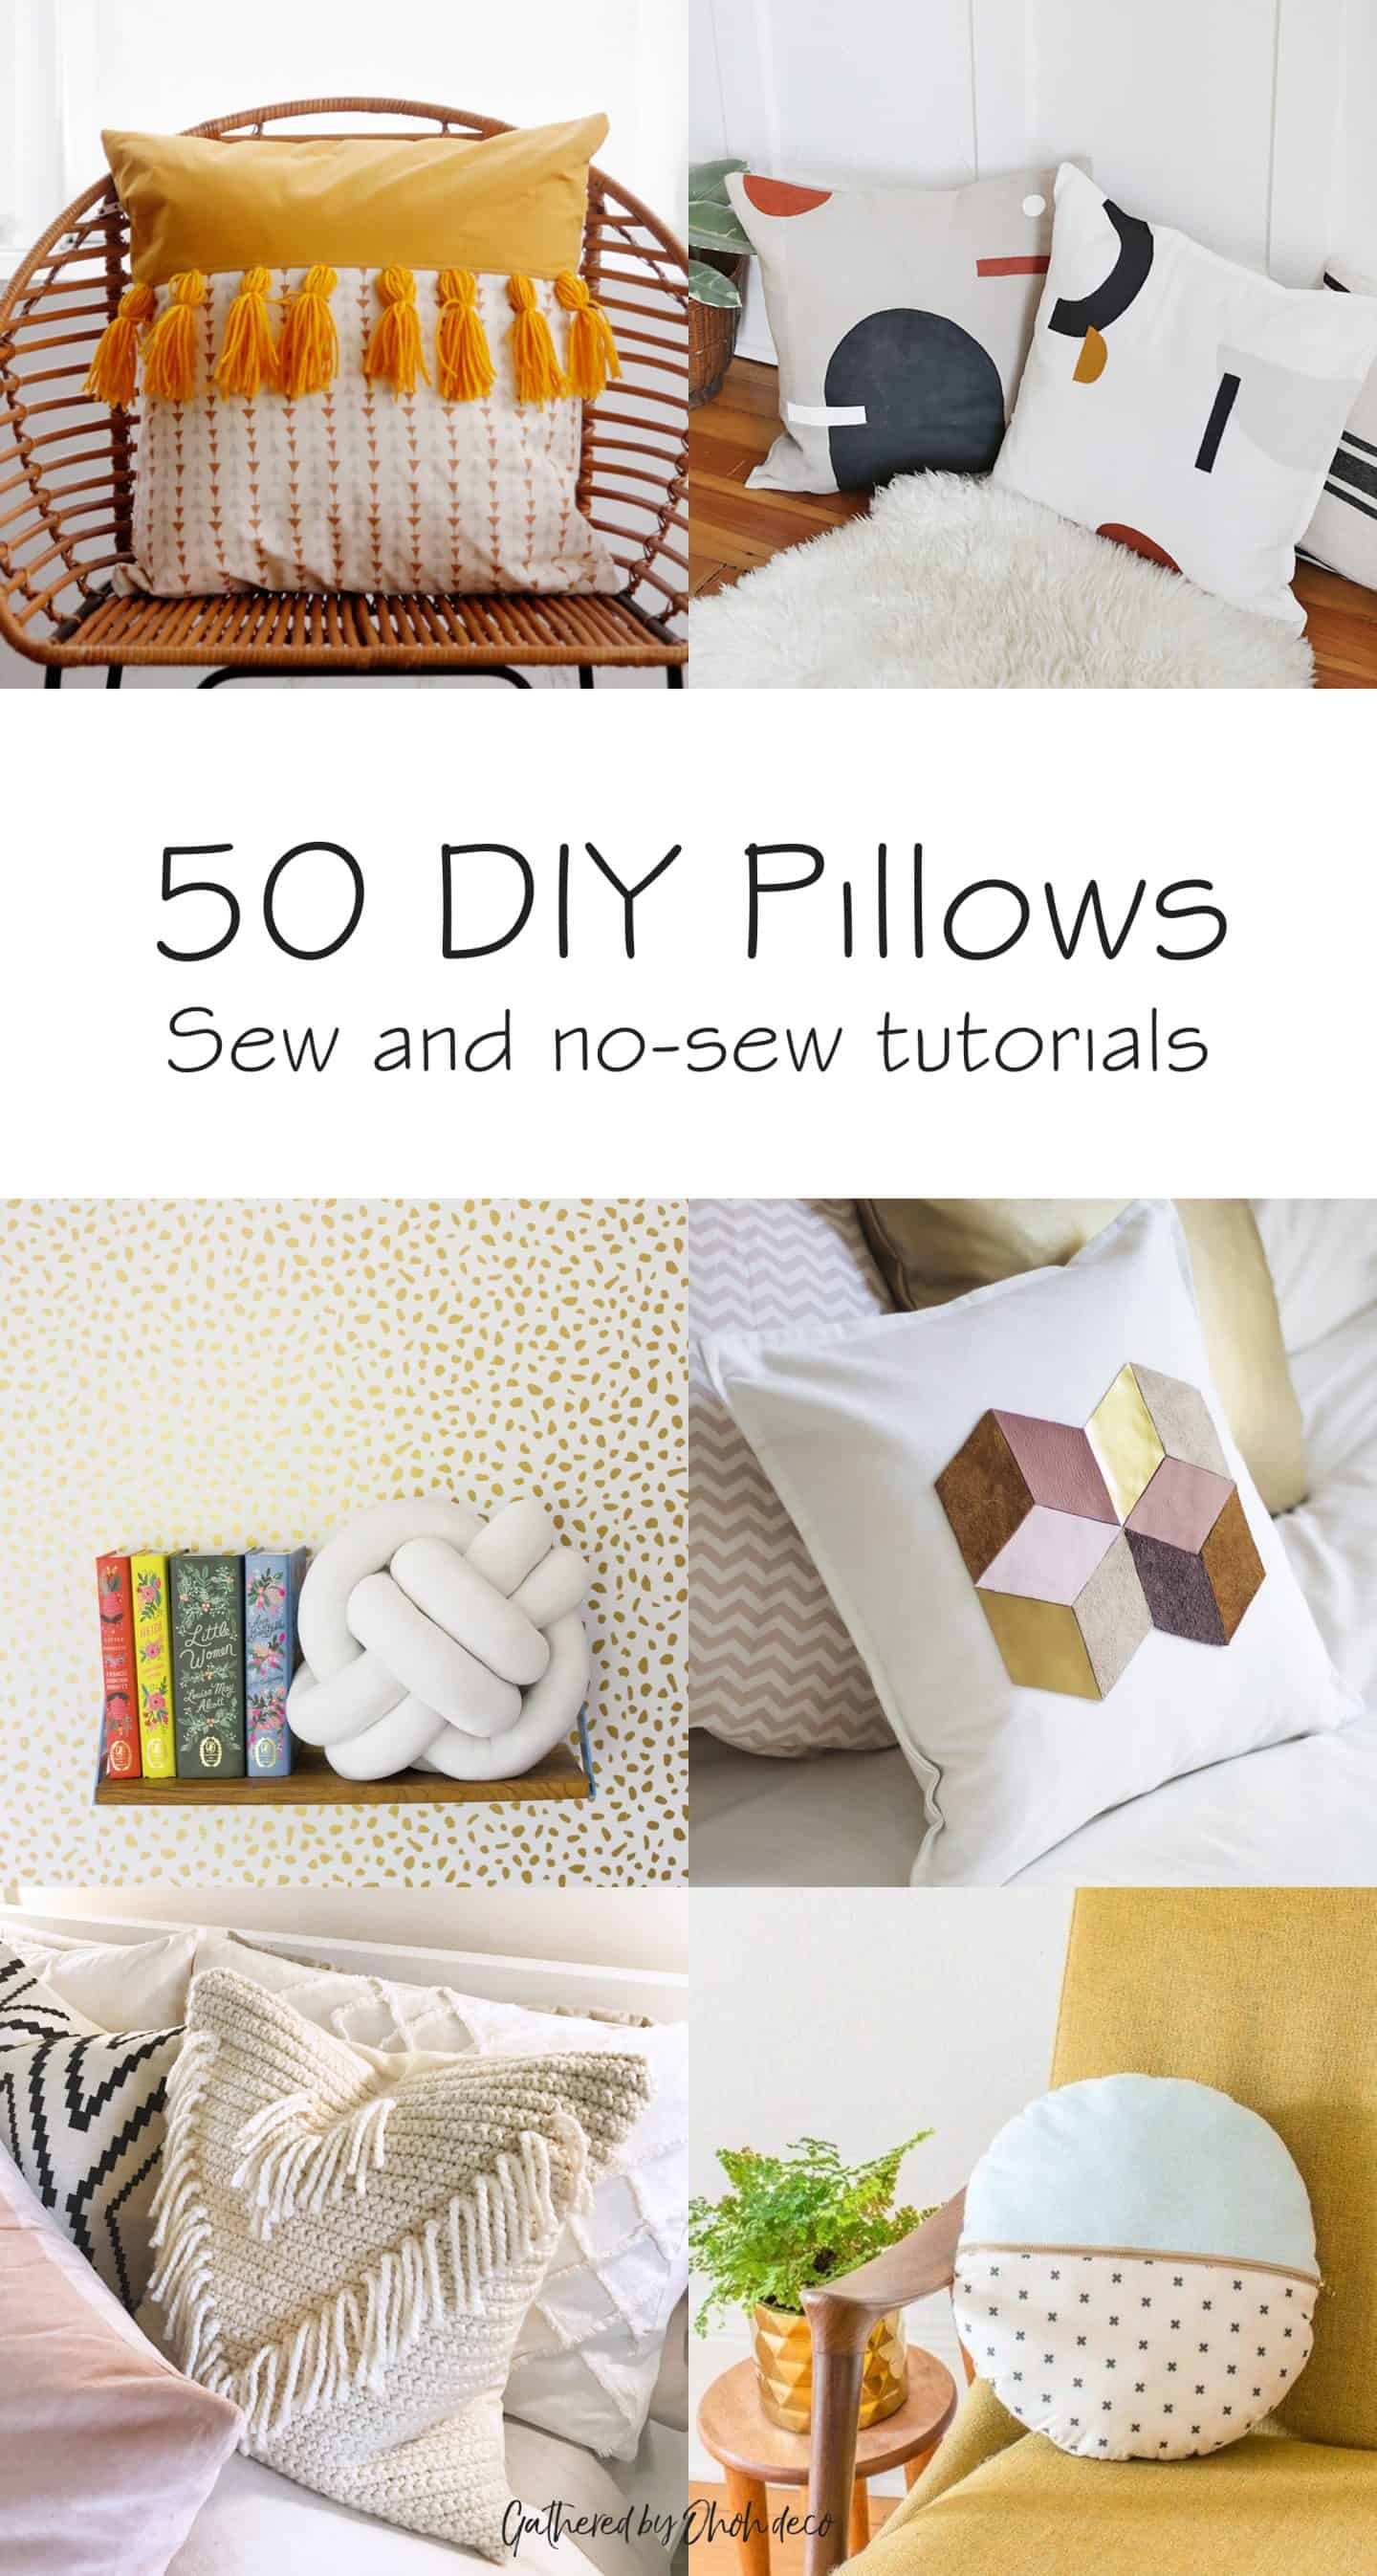 50 DIY pillows - sewing tutorial and no-sew step by step #pillow #cushion #sewing #nosew